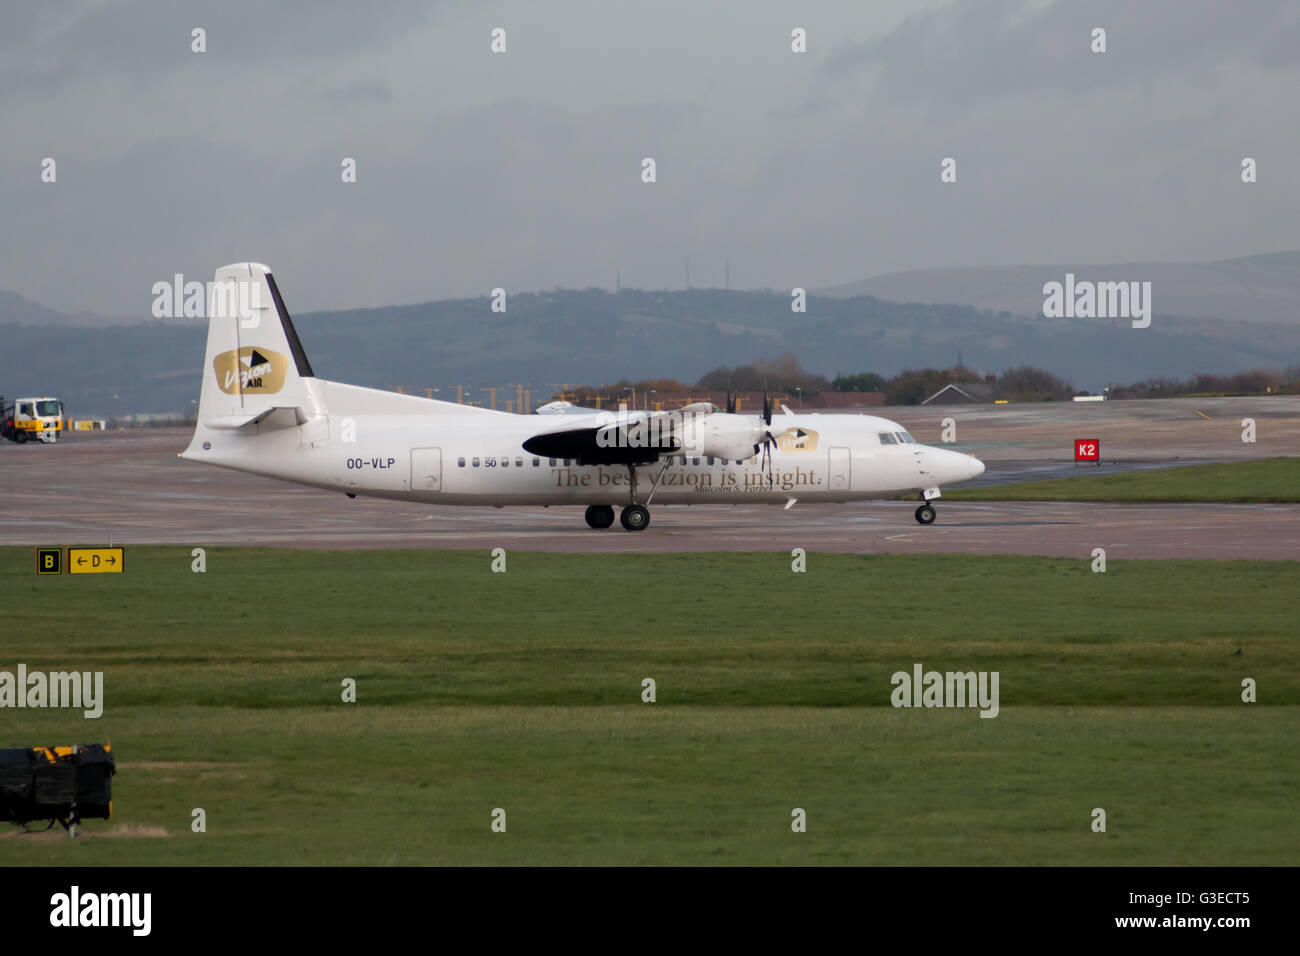 VLM Airlines Fokker 50 regional turbo-prop aircraft (OO-VLP) taxiing on  Manchester International Airport tarmac.